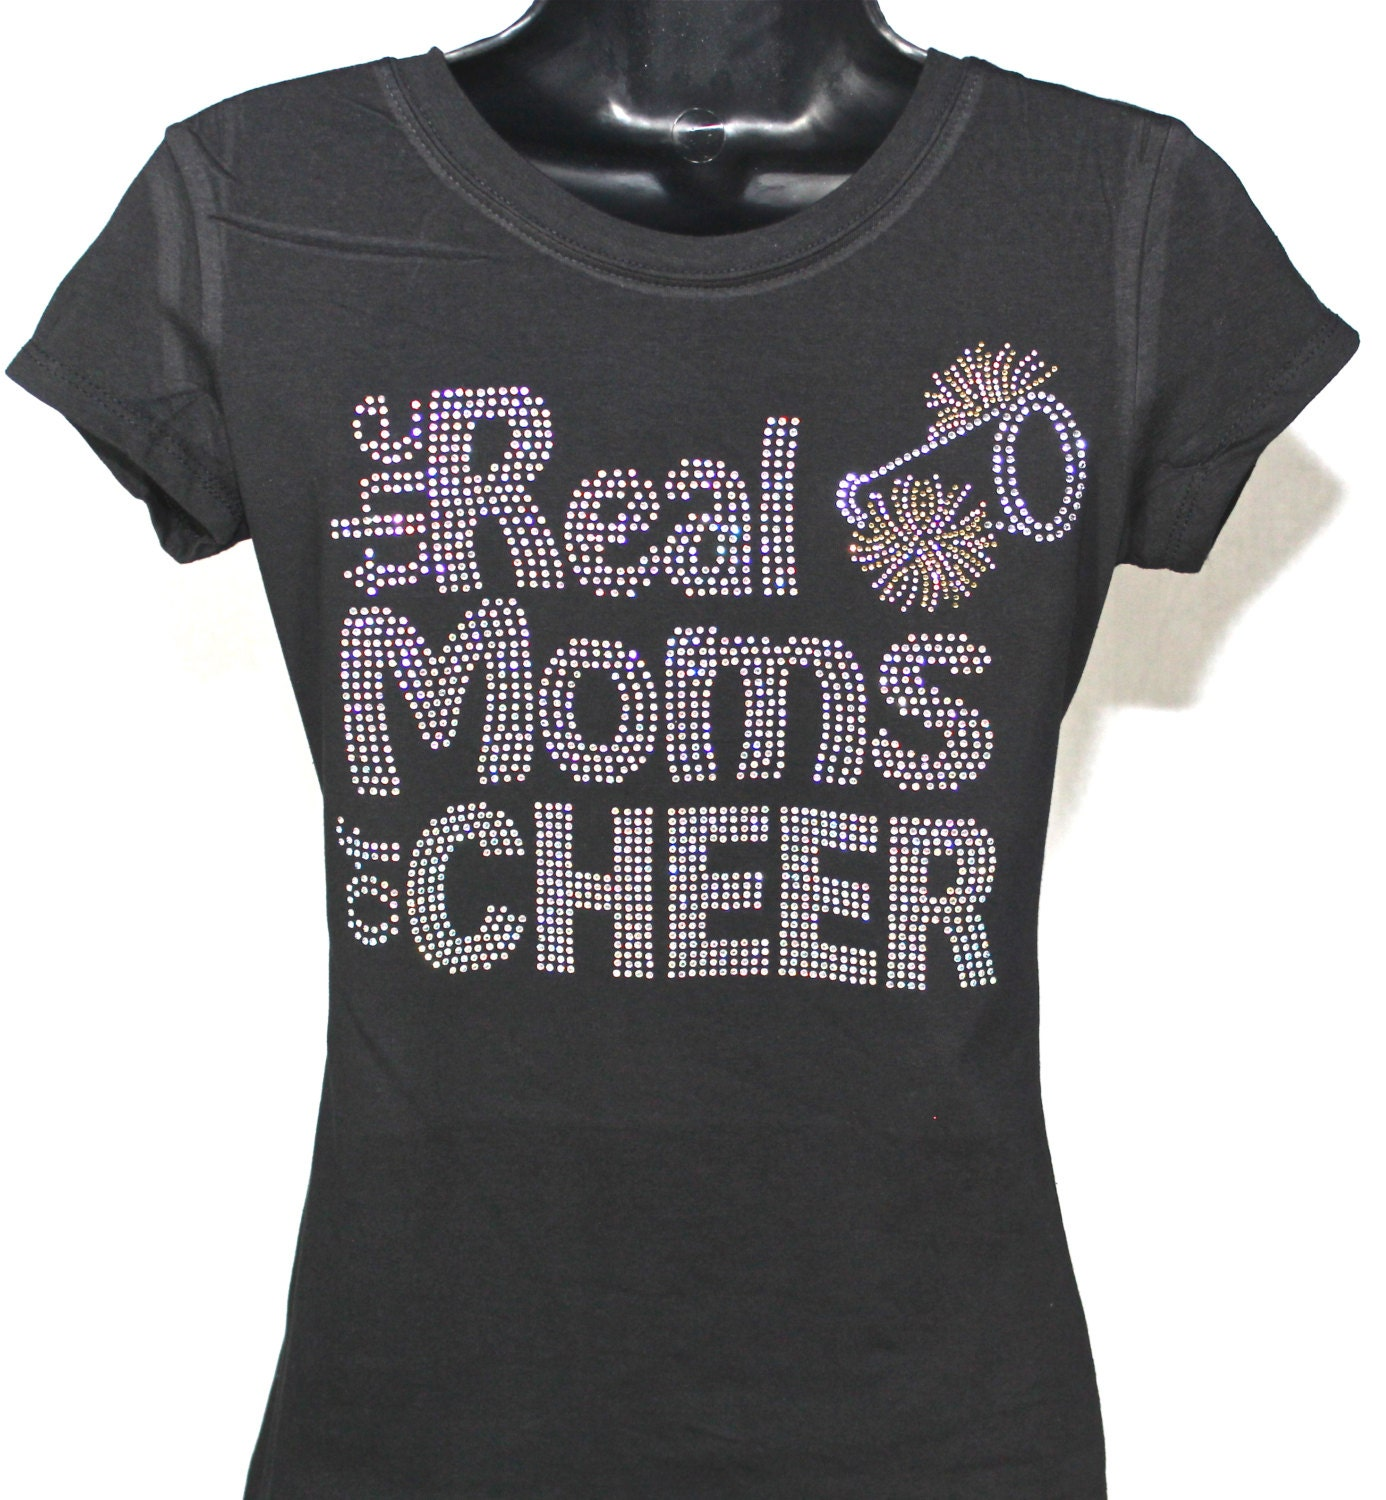 Cheer mom the real moms of cheer bling by theteeshirtmakers Cheerleading t shirt designs